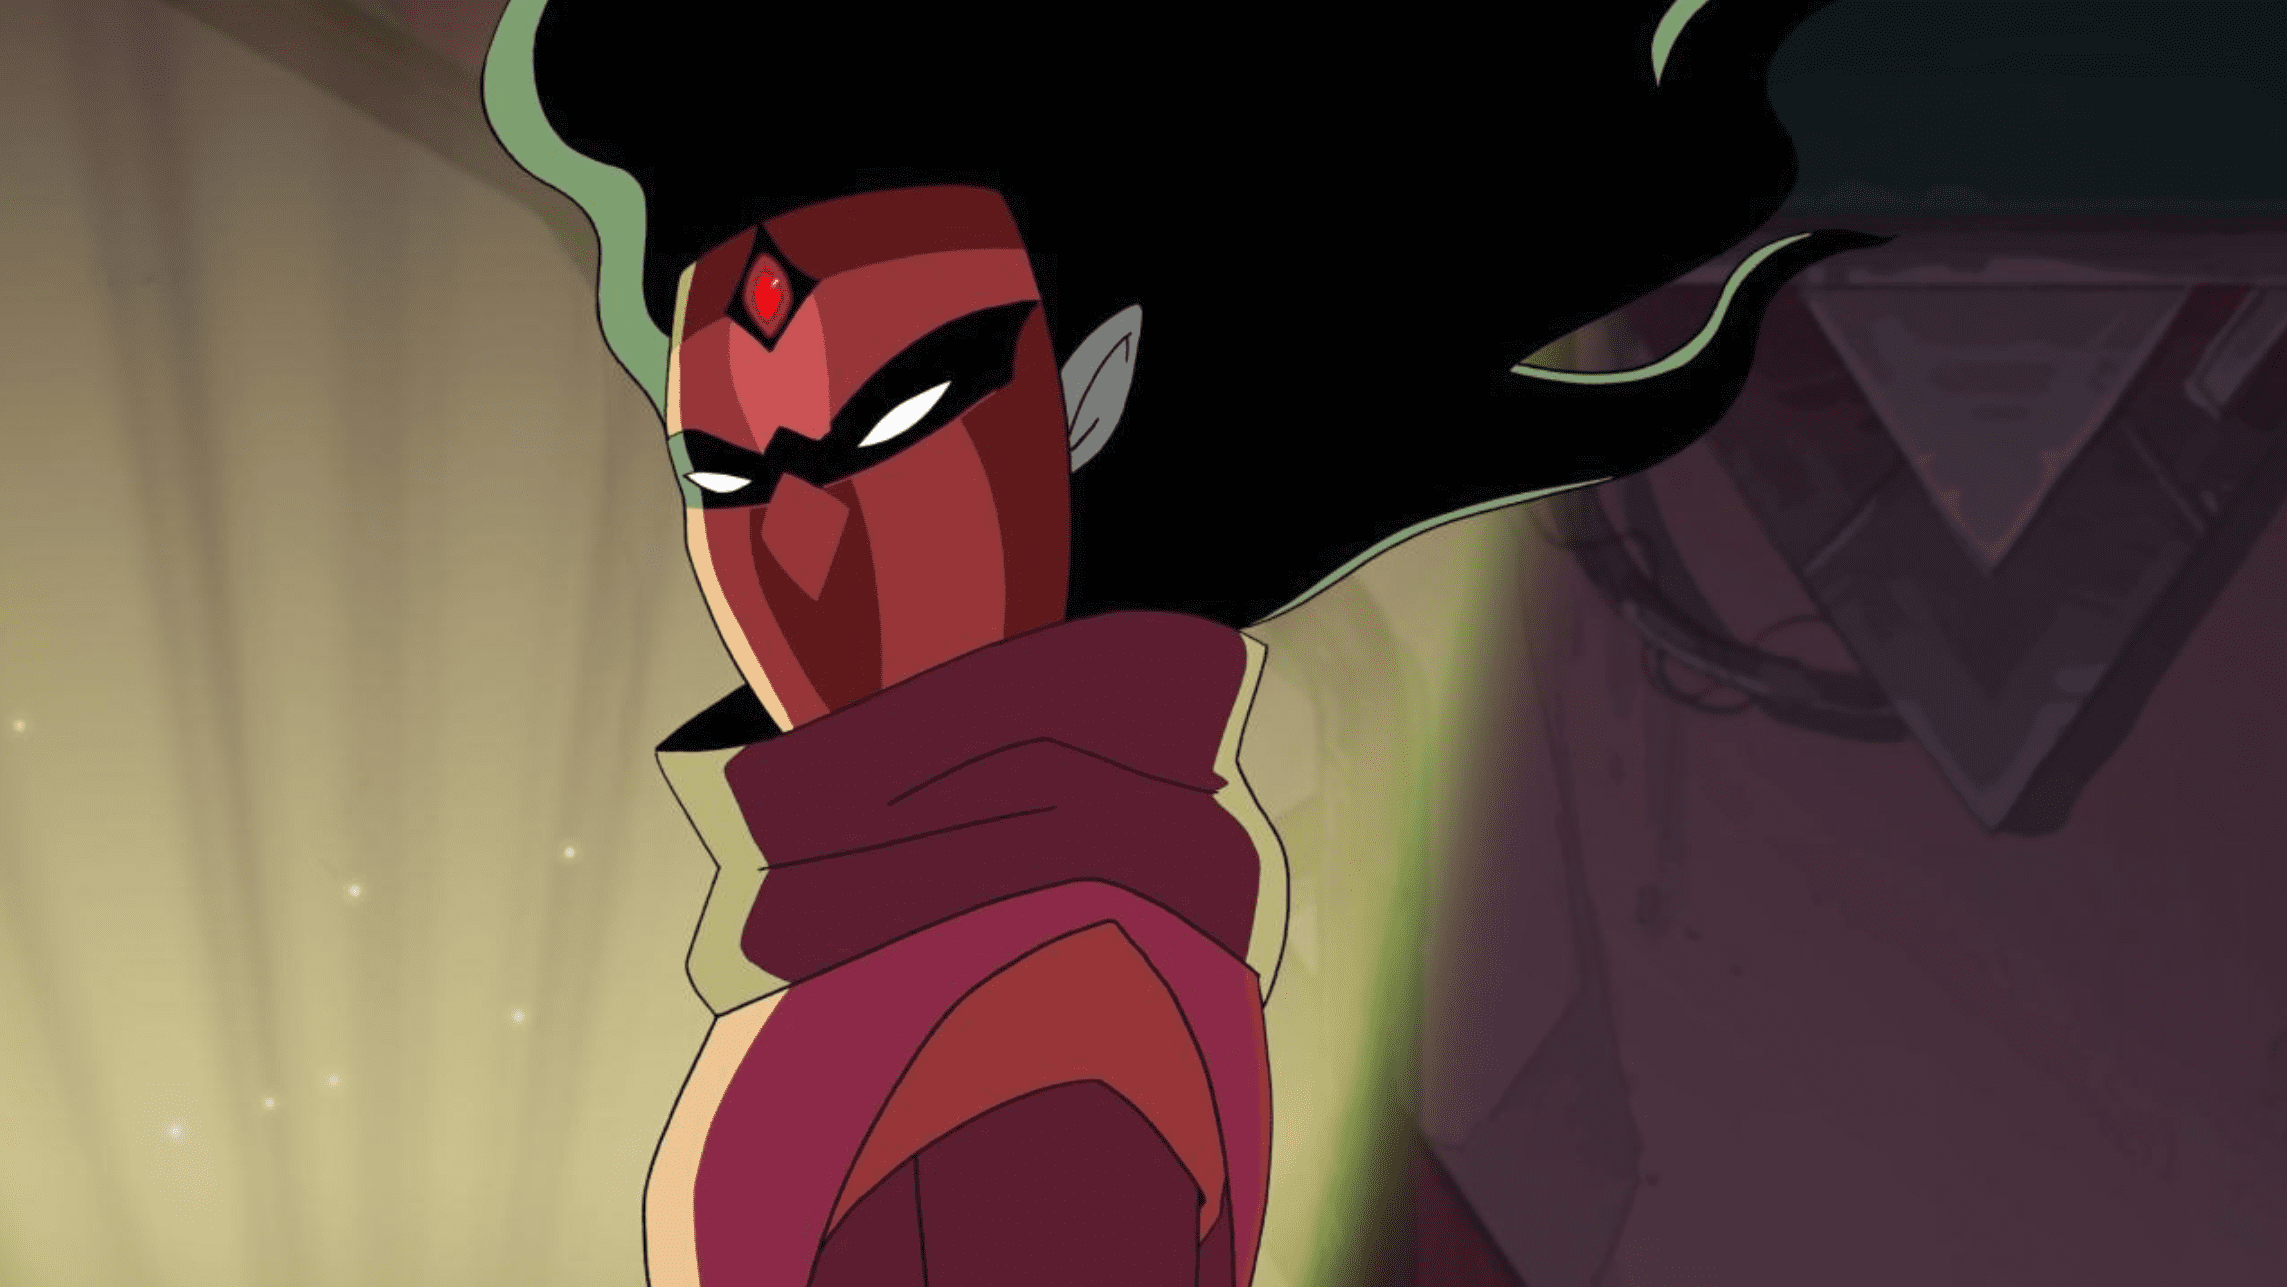 An image of Shadow Weaver from the Netflix cartoon series